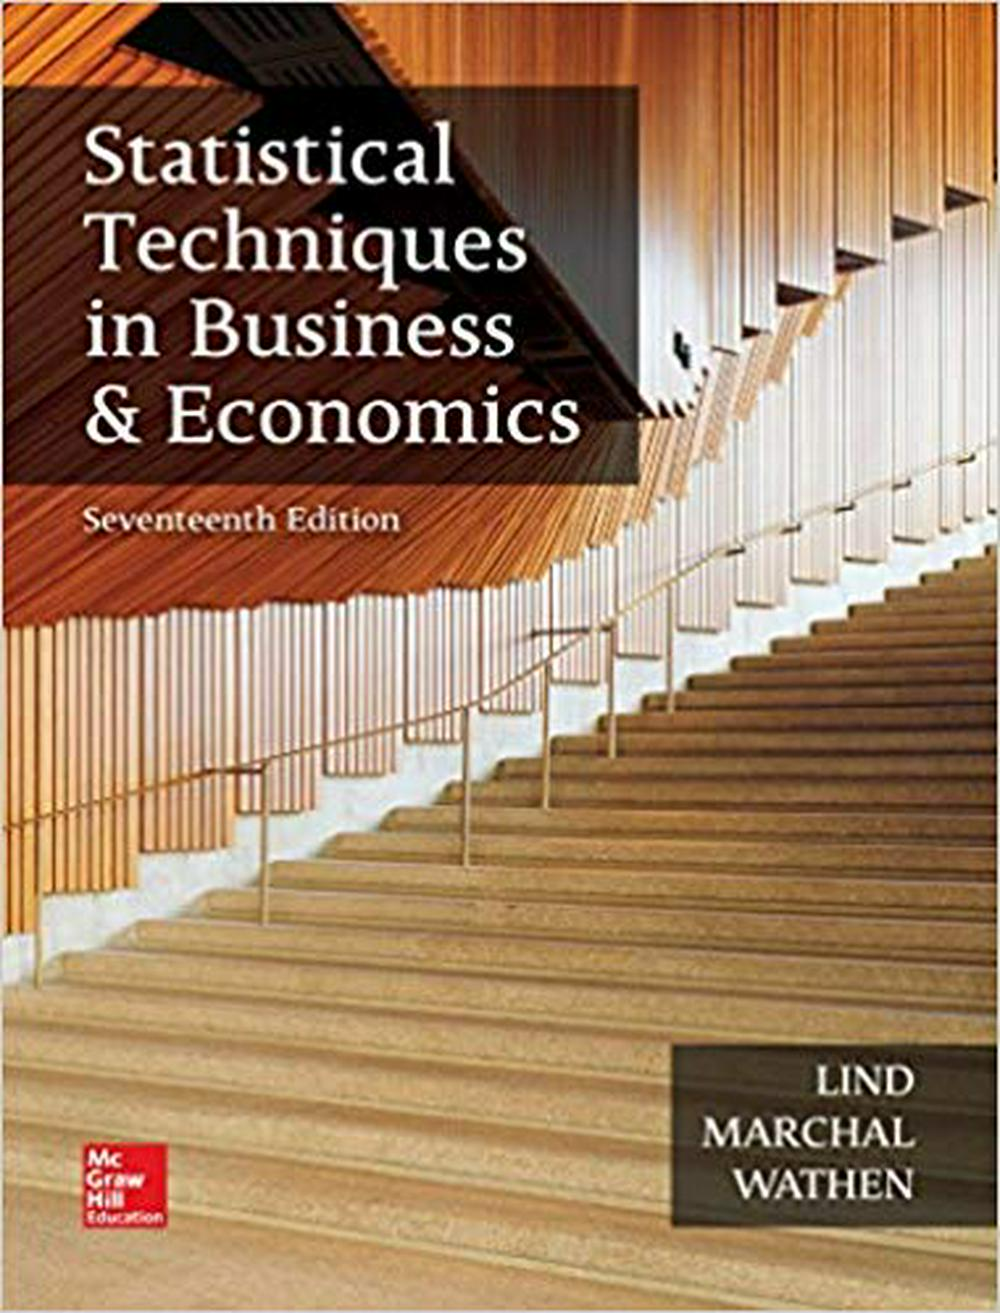 Statistical Techniques in Business and Economics by Douglas A. Lind,William G. Marchal, ISBN: 9781259666360